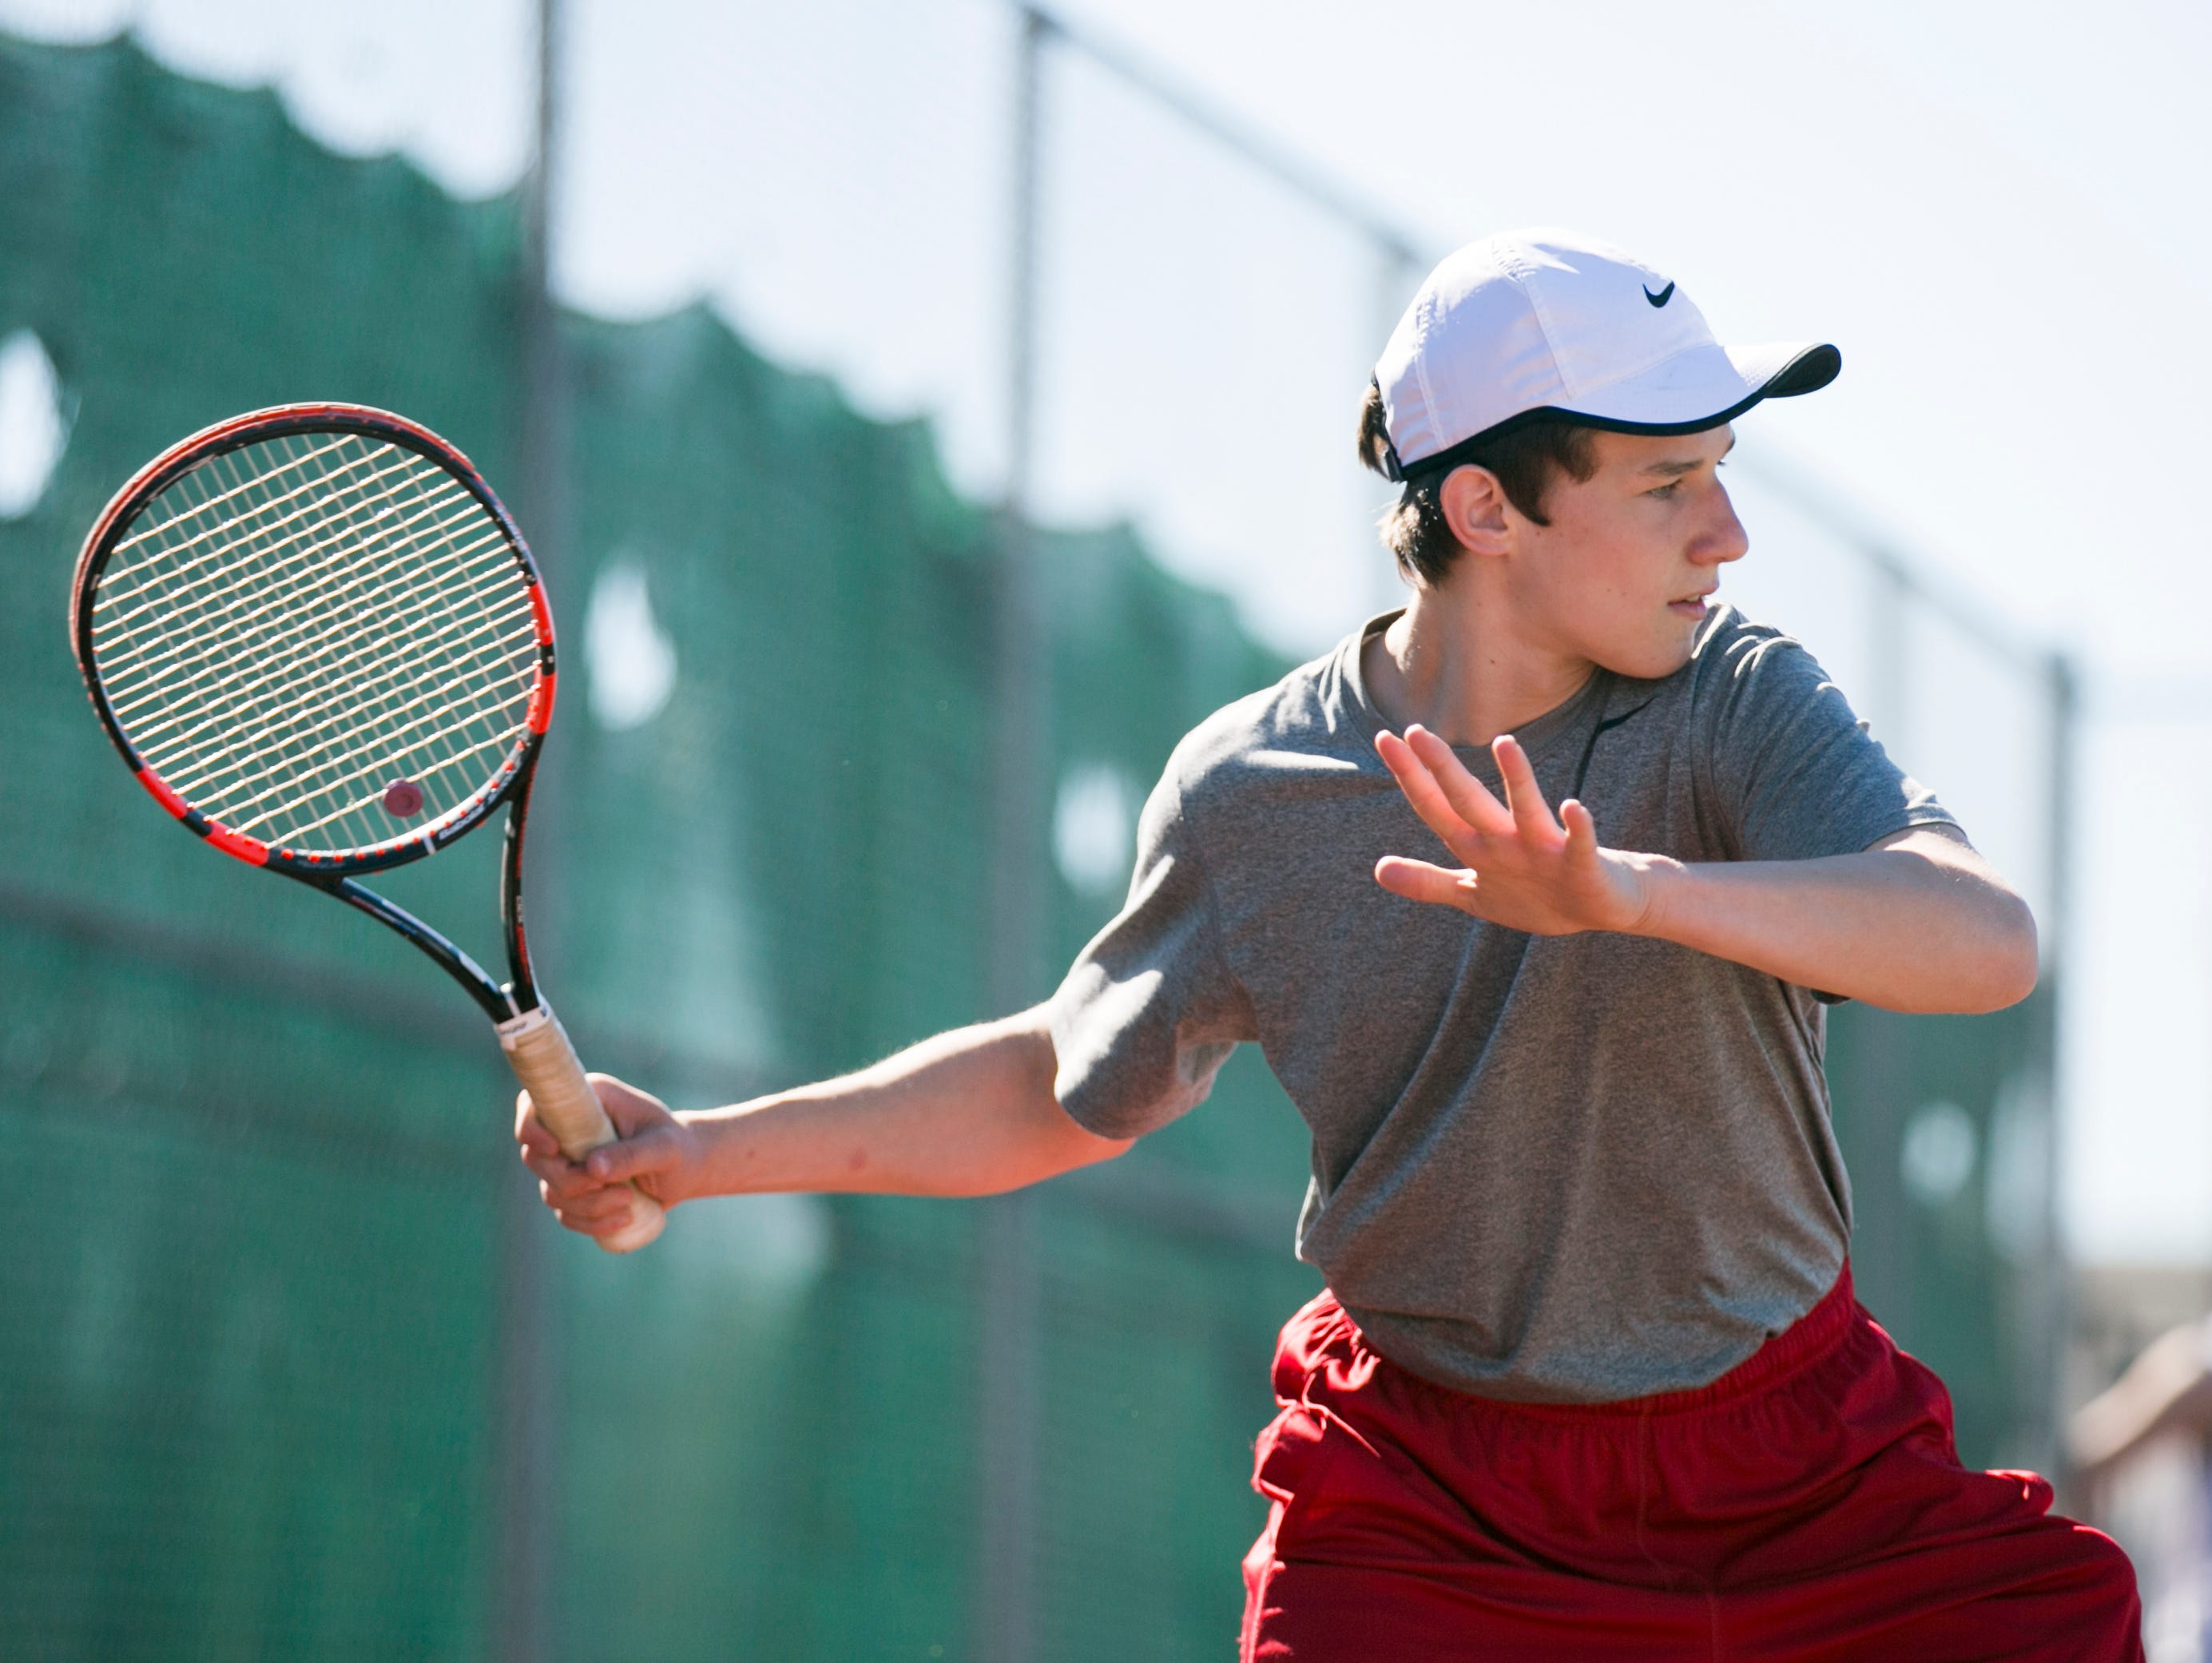 Dallas High School senior and tennis player Thomas Gniadecki is a foreign exchange student from Denmark. Gniadecki has competed not just in tennis but in the sport Dallas is best known for: wrestling.